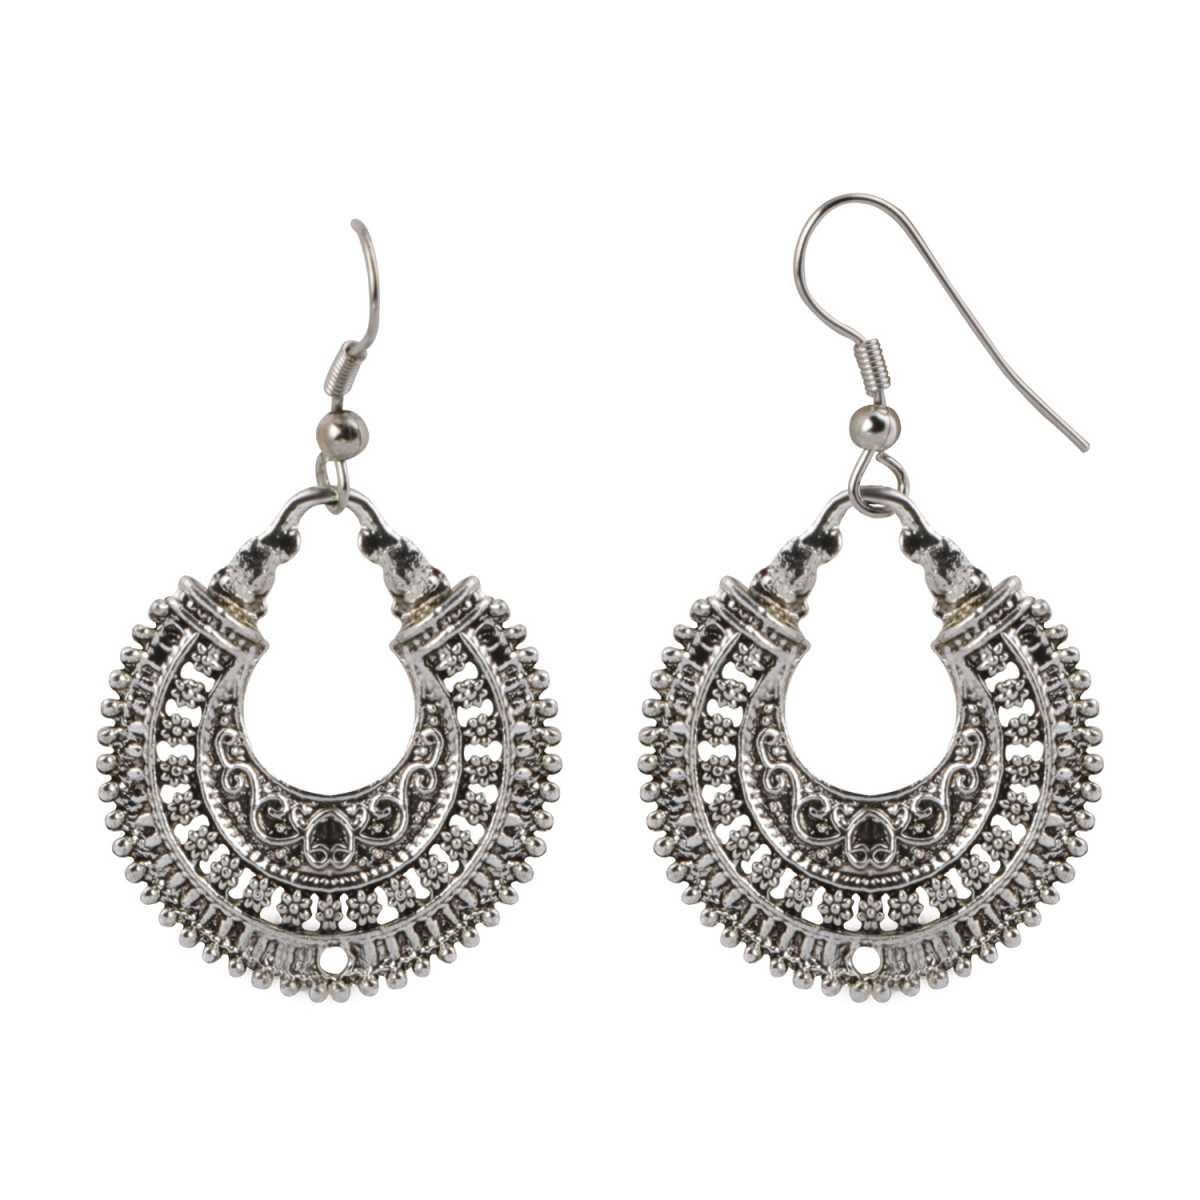 Silver Shine Alluring Traditional Chandbali Silver Earrings for Women